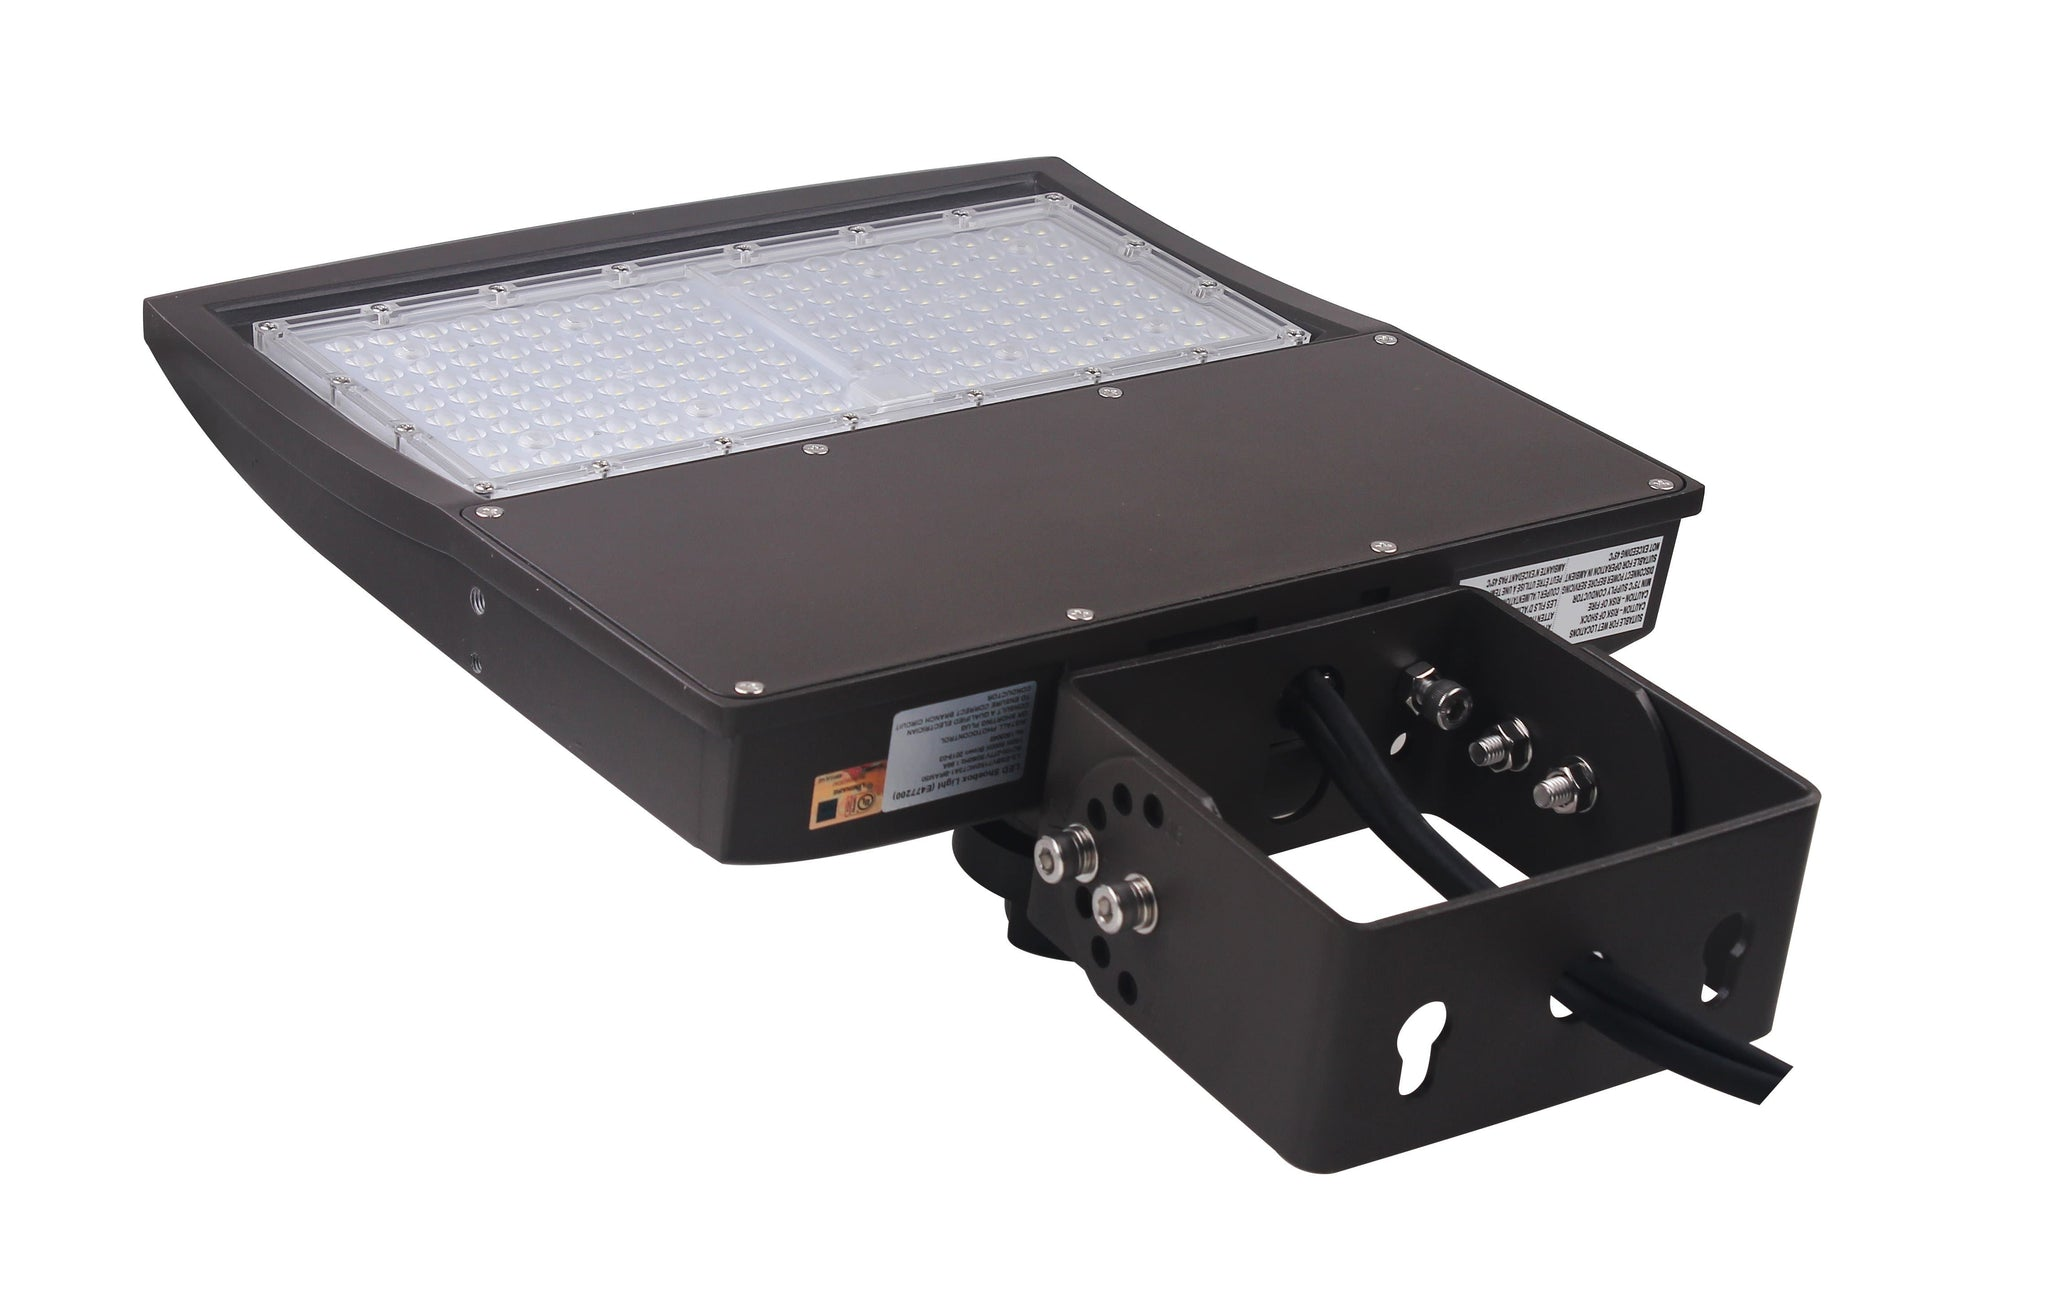 LED Shoebox Gen3 Light 150W 19500LM- Adjustable Yoke Mount